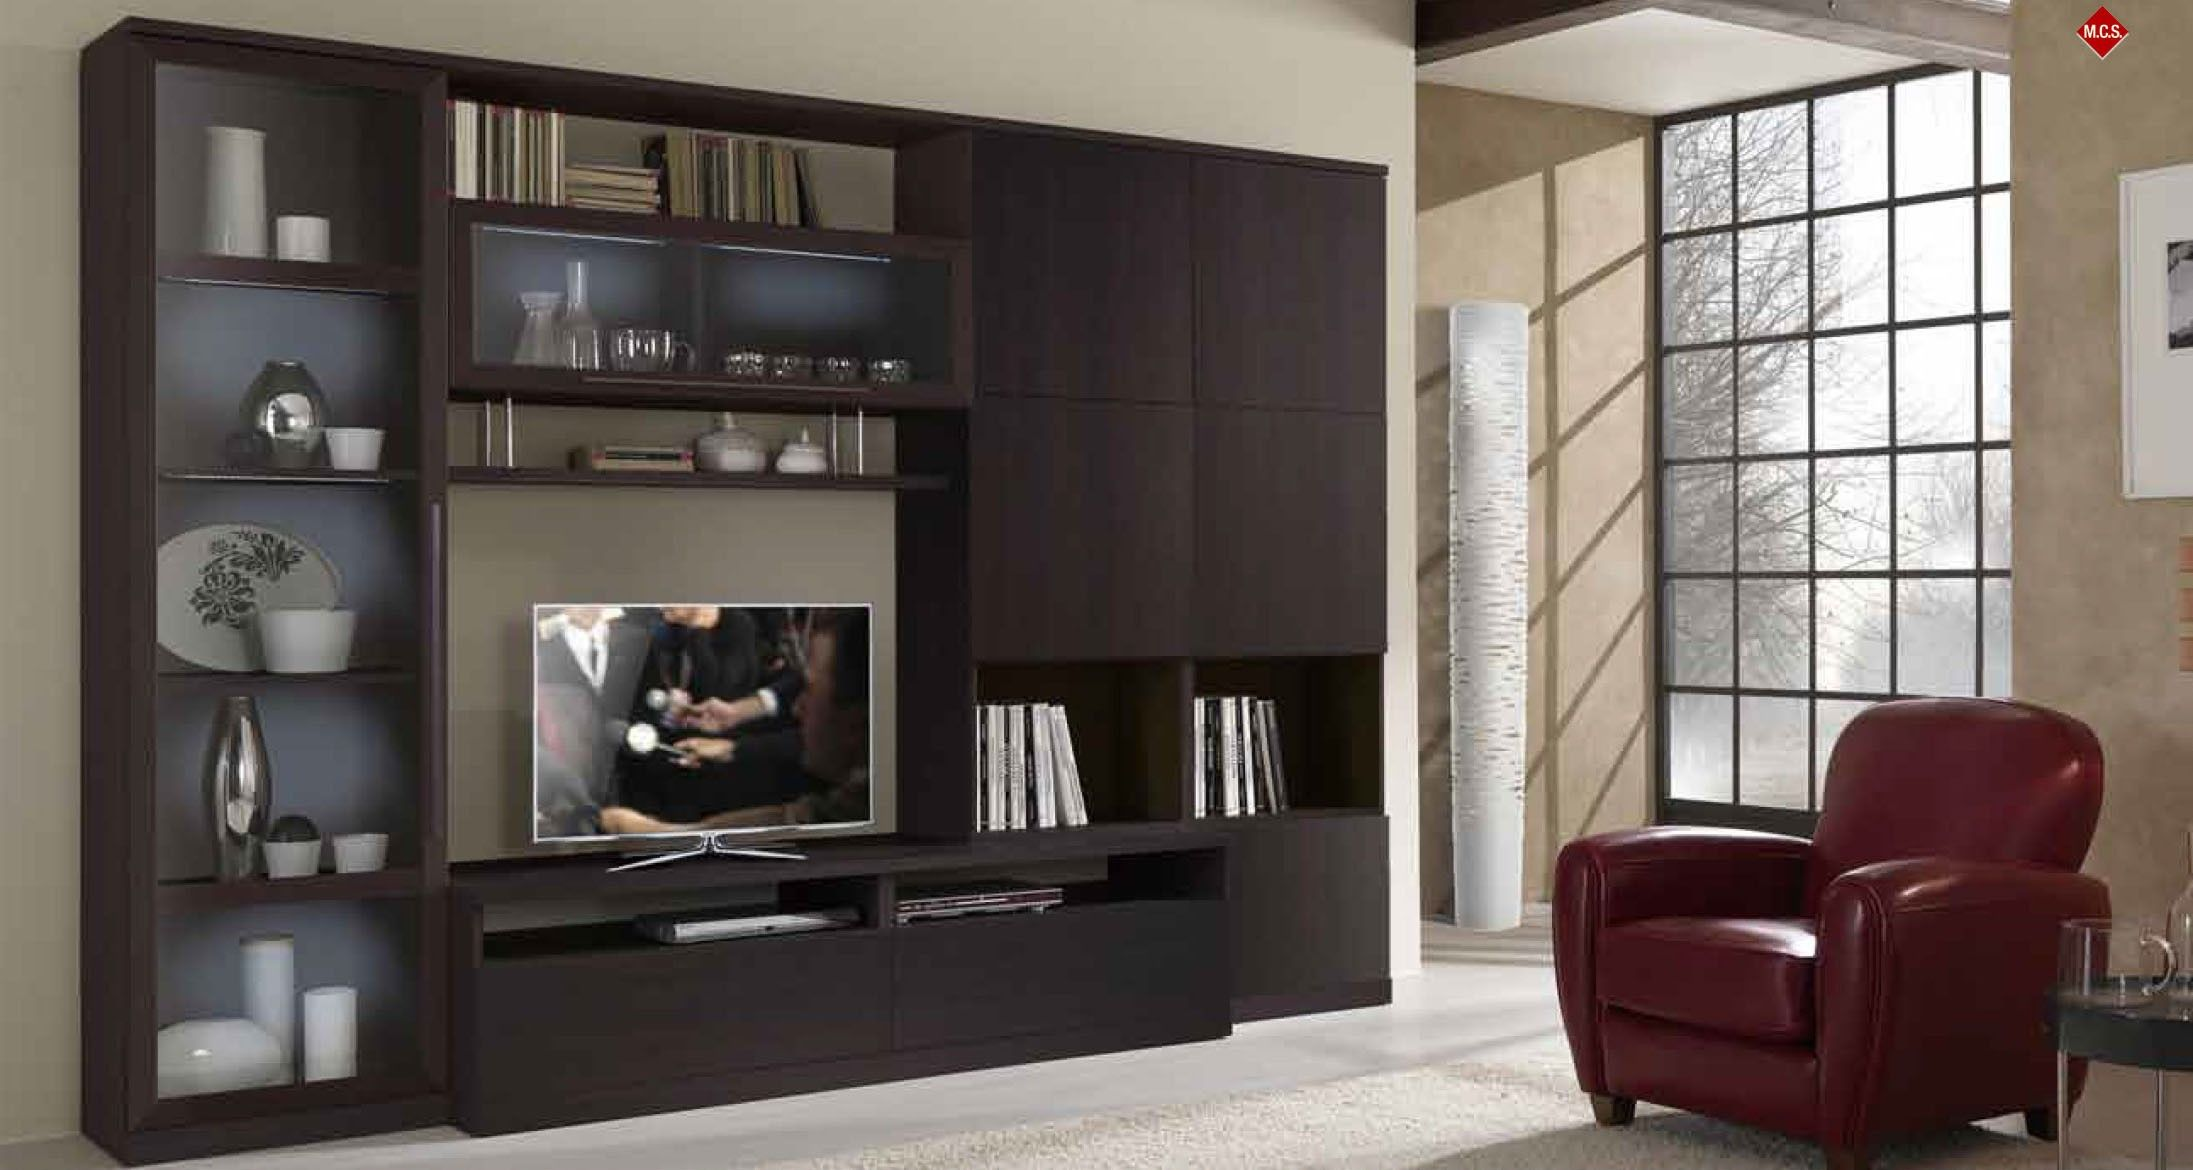 Image Result For Tv Unit Design Entertainment Wall Units Living Room Entertainment Wall Unit Designs